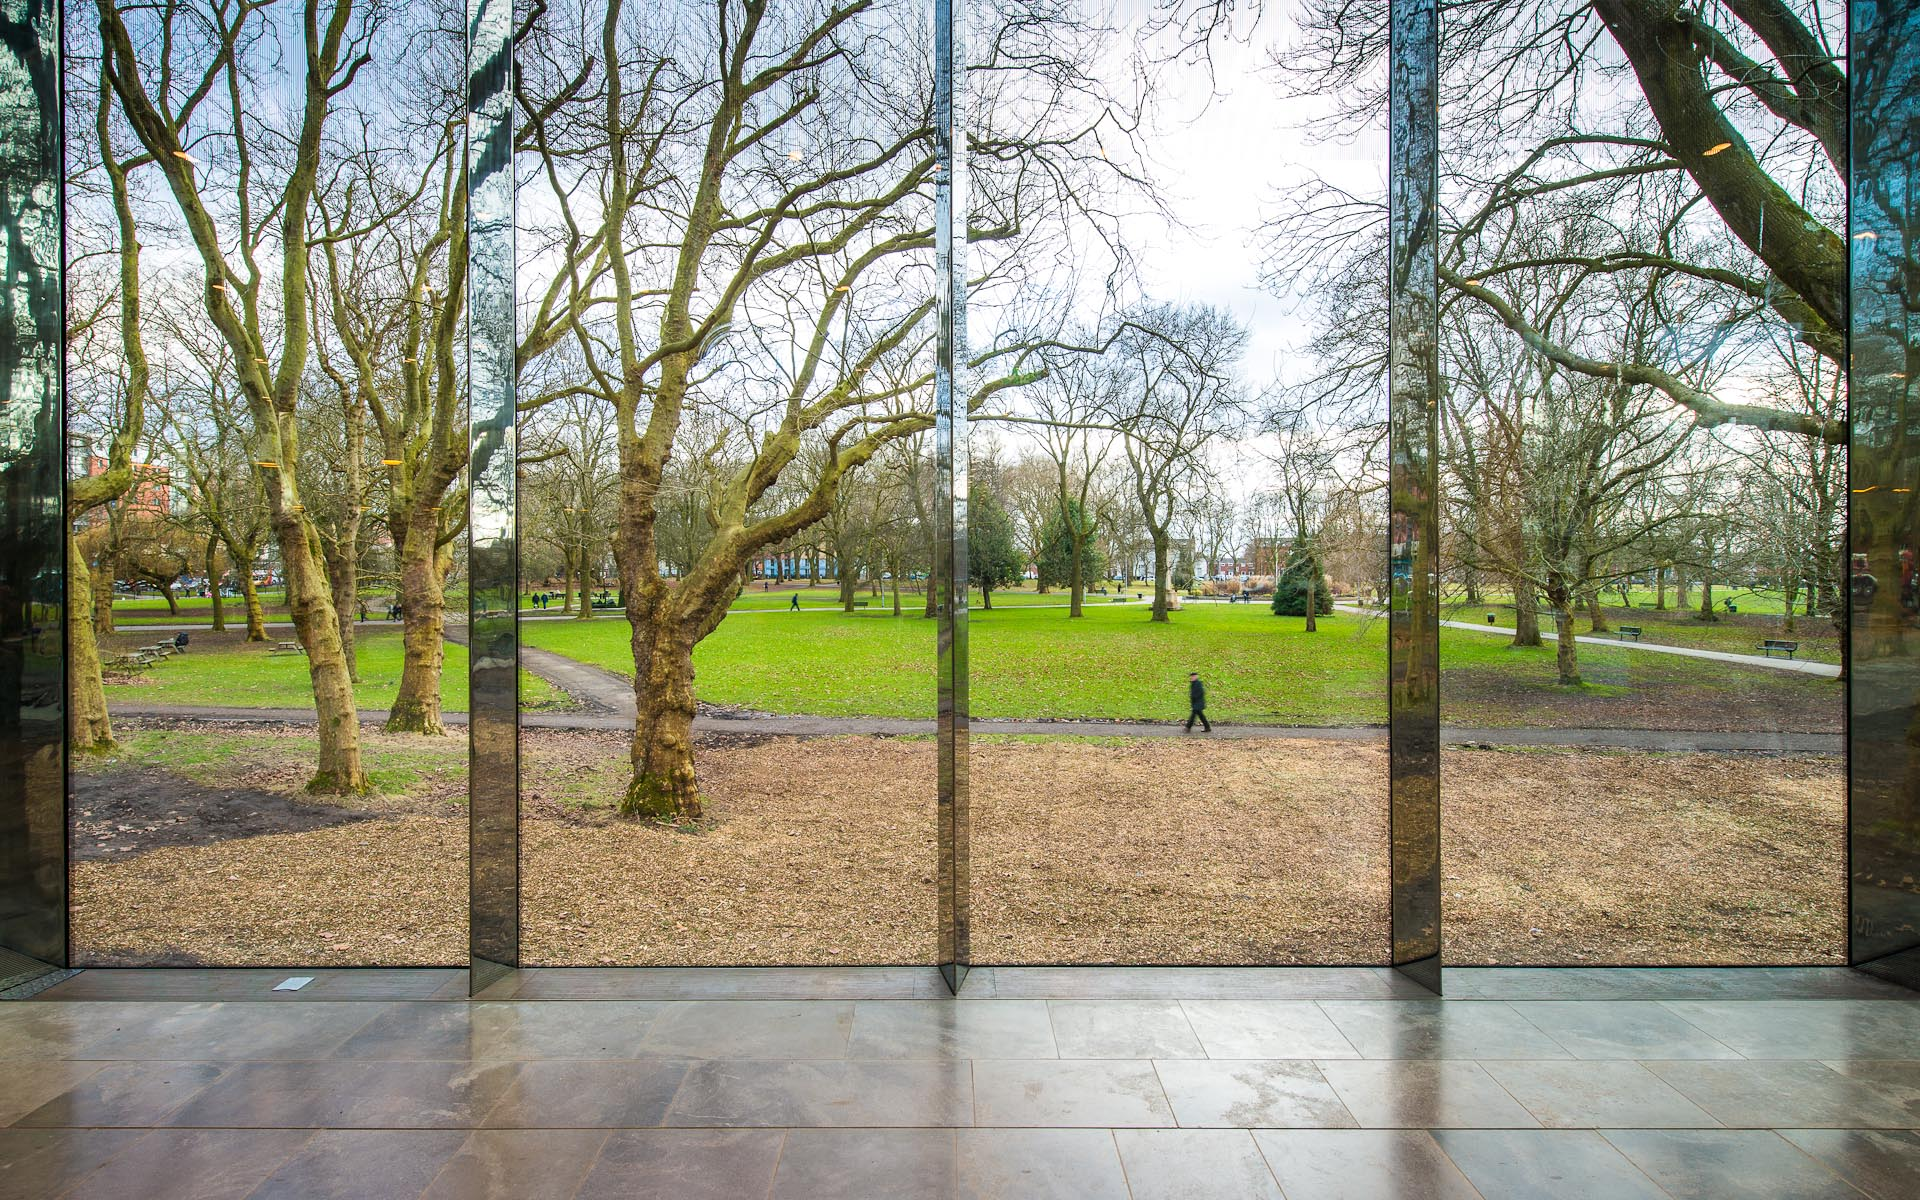 Interior daytime capture of Whitworth Art Gallery Manchester England glass panels view through to green park